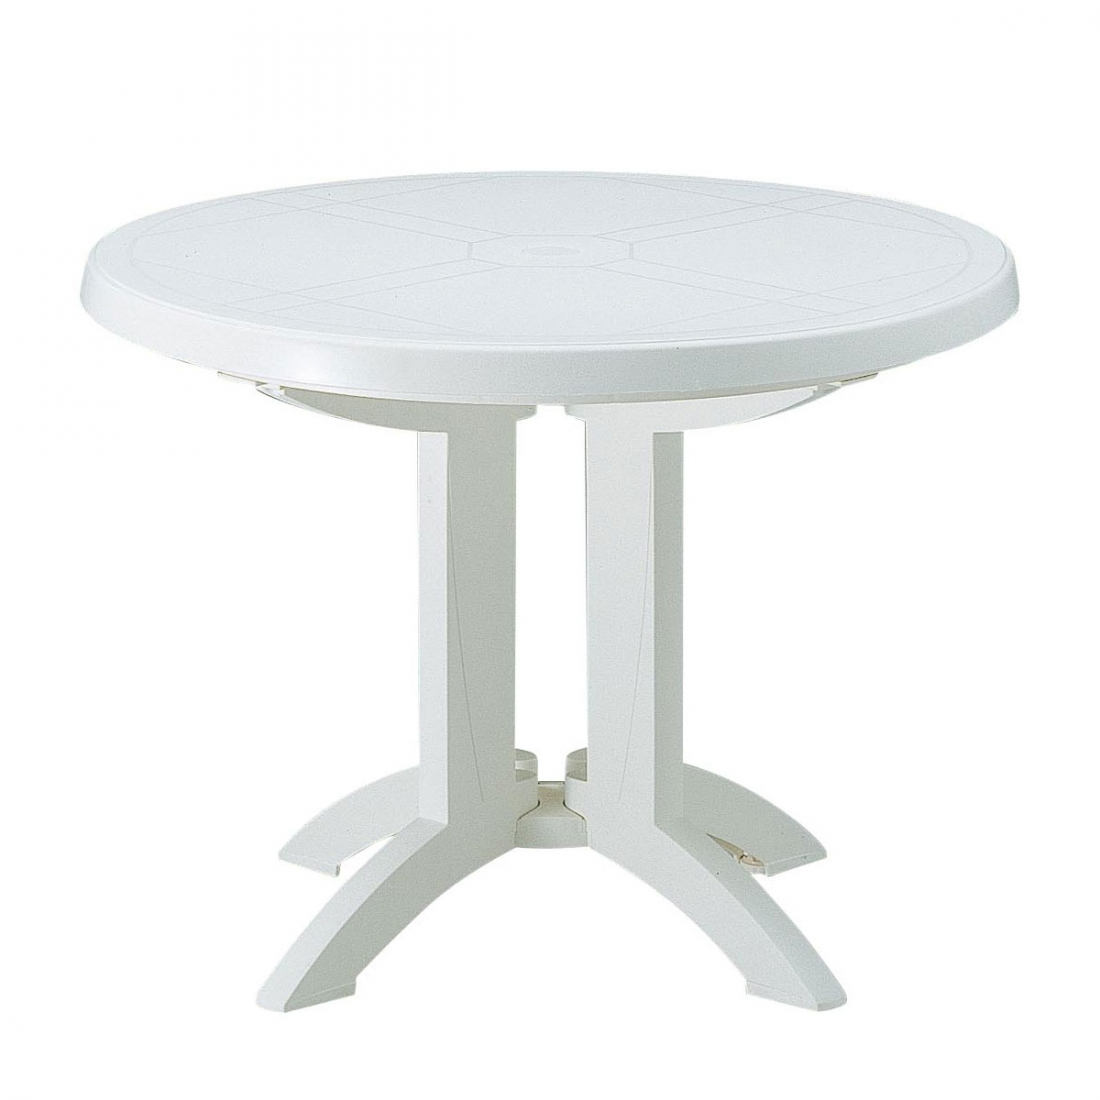 Table ronde de jardin vega grosfillex for Table design ronde